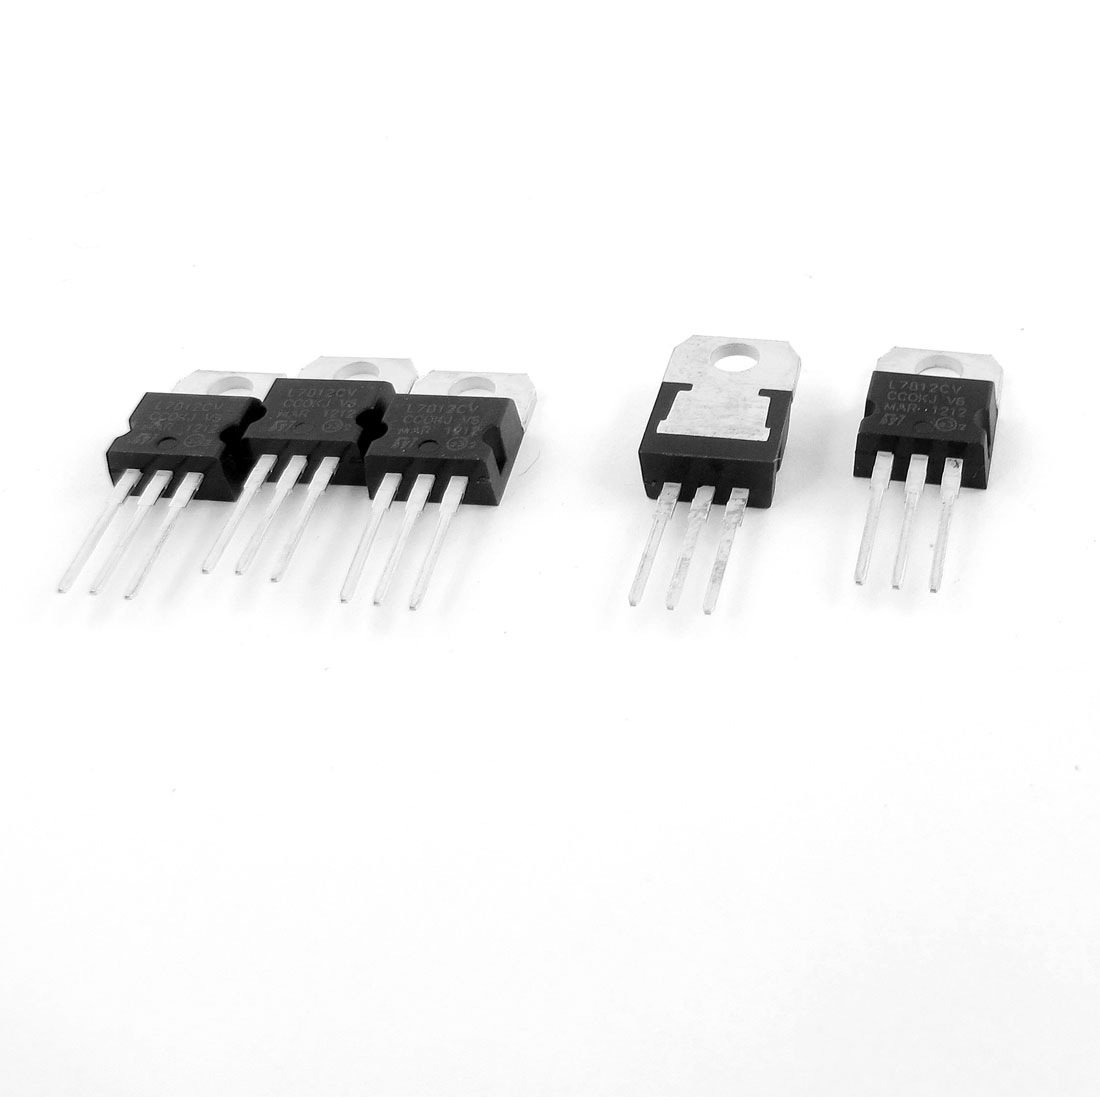 5 Pcs Protective 3 Terminals 1.5A 12V Positive Voltage Regulator L7812CV